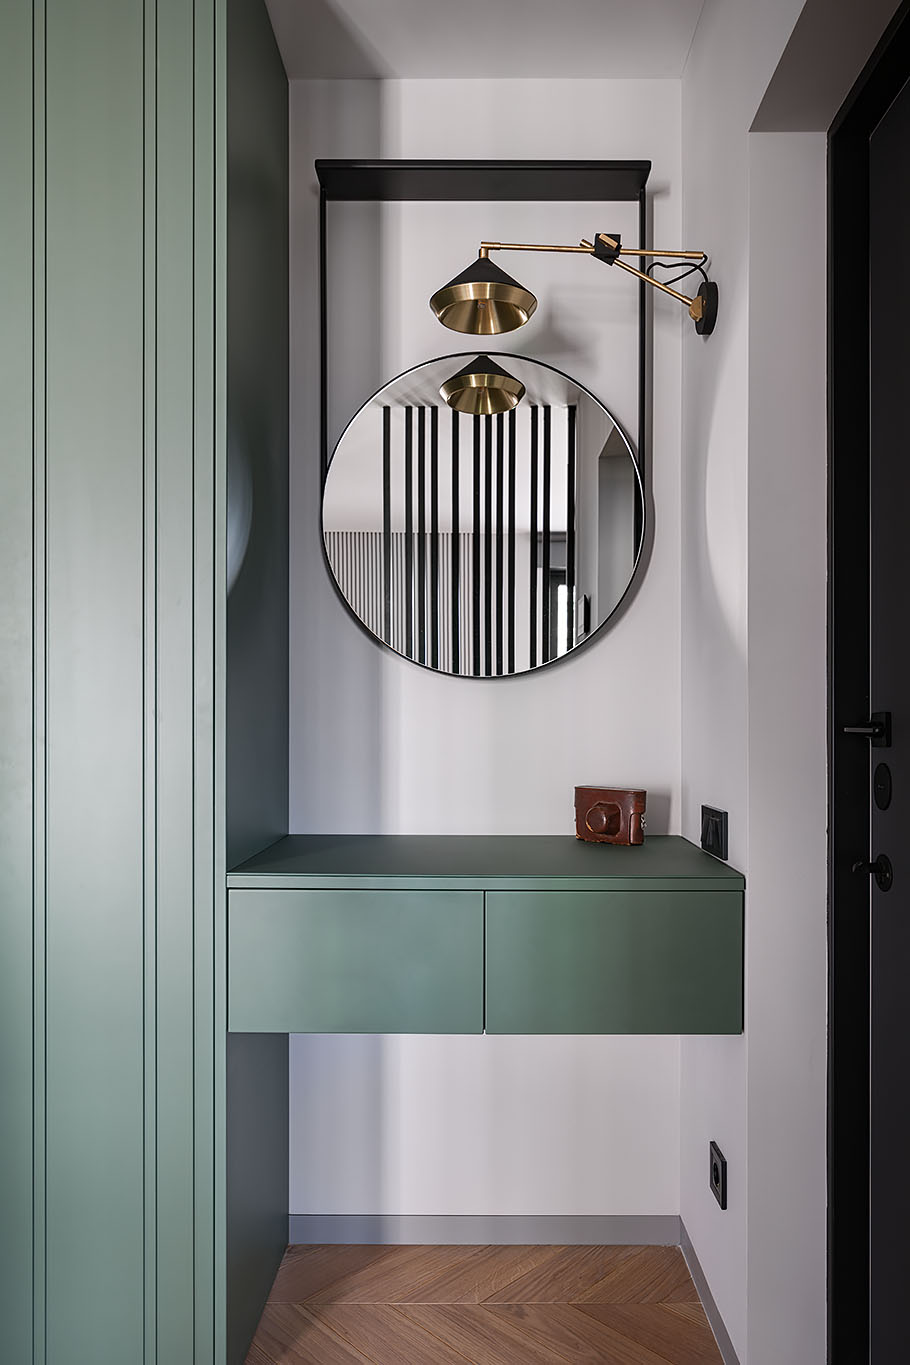 A small nook has been filled with a custom-built floating storage cabinet that also acts as an entryway table. Above, there's a round mirror, while a wall-mounted lamp adds light.